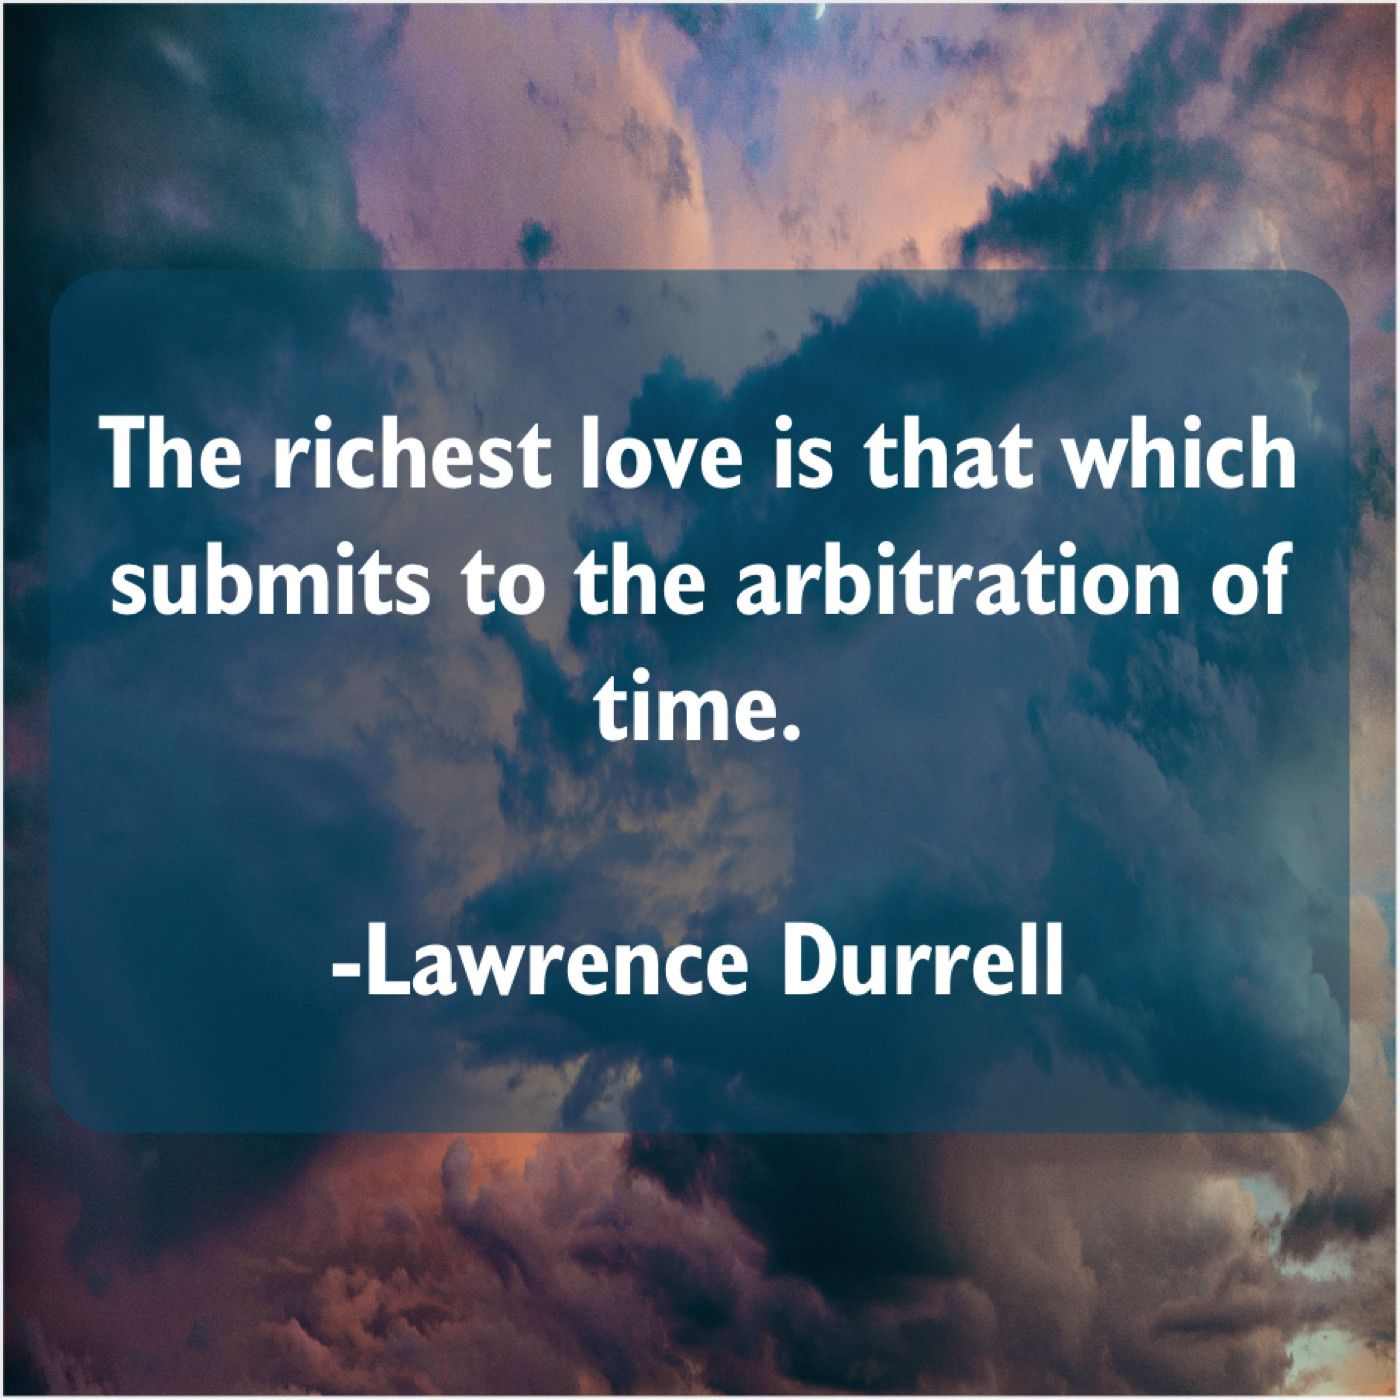 Lawrence Durrell The Richest Love Is That Greatful Lawrence Madame